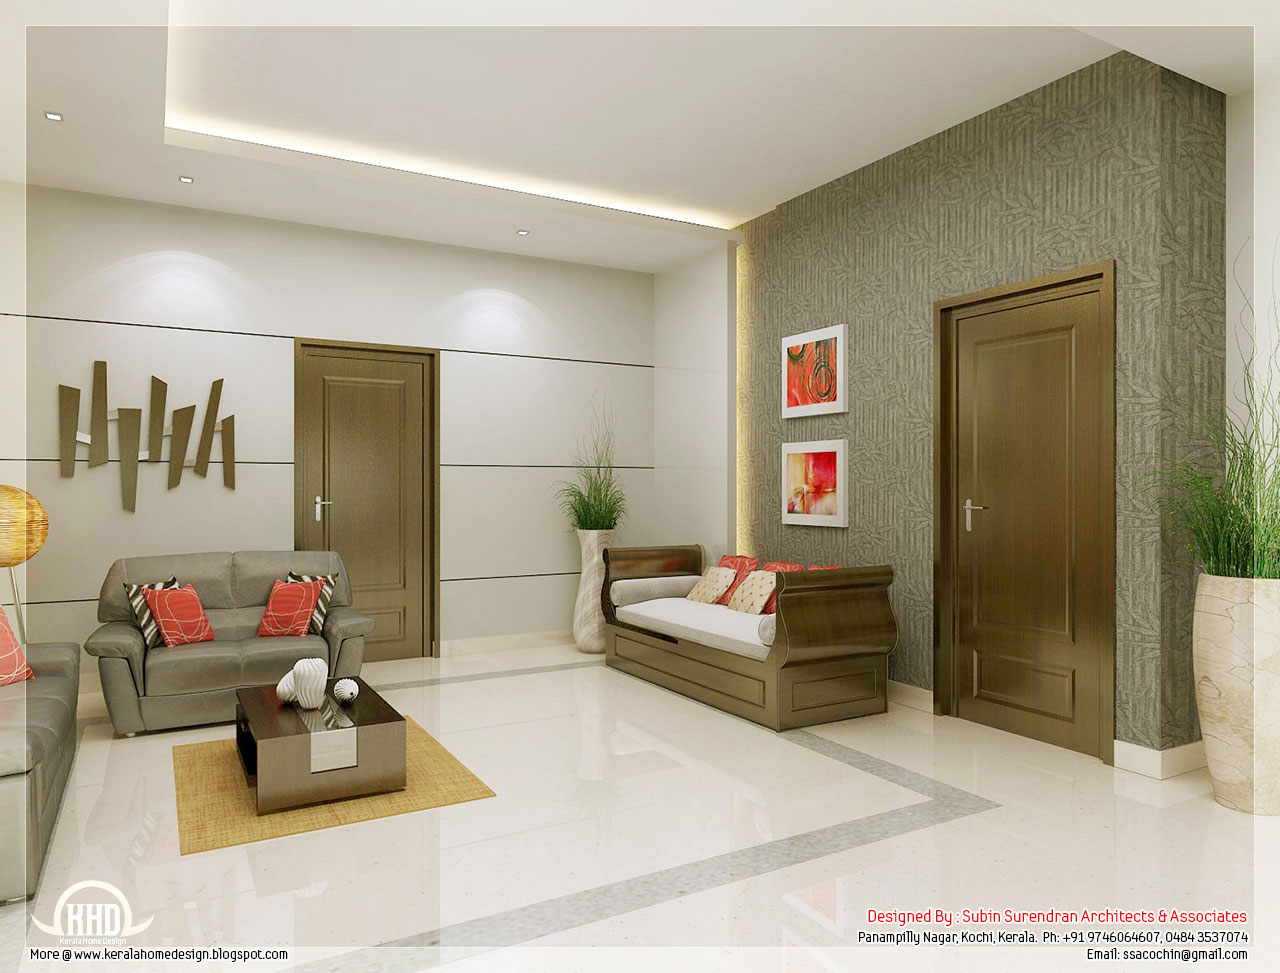 Awesome 3d interior renderings kerala home design and for Interior design lounge room ideas